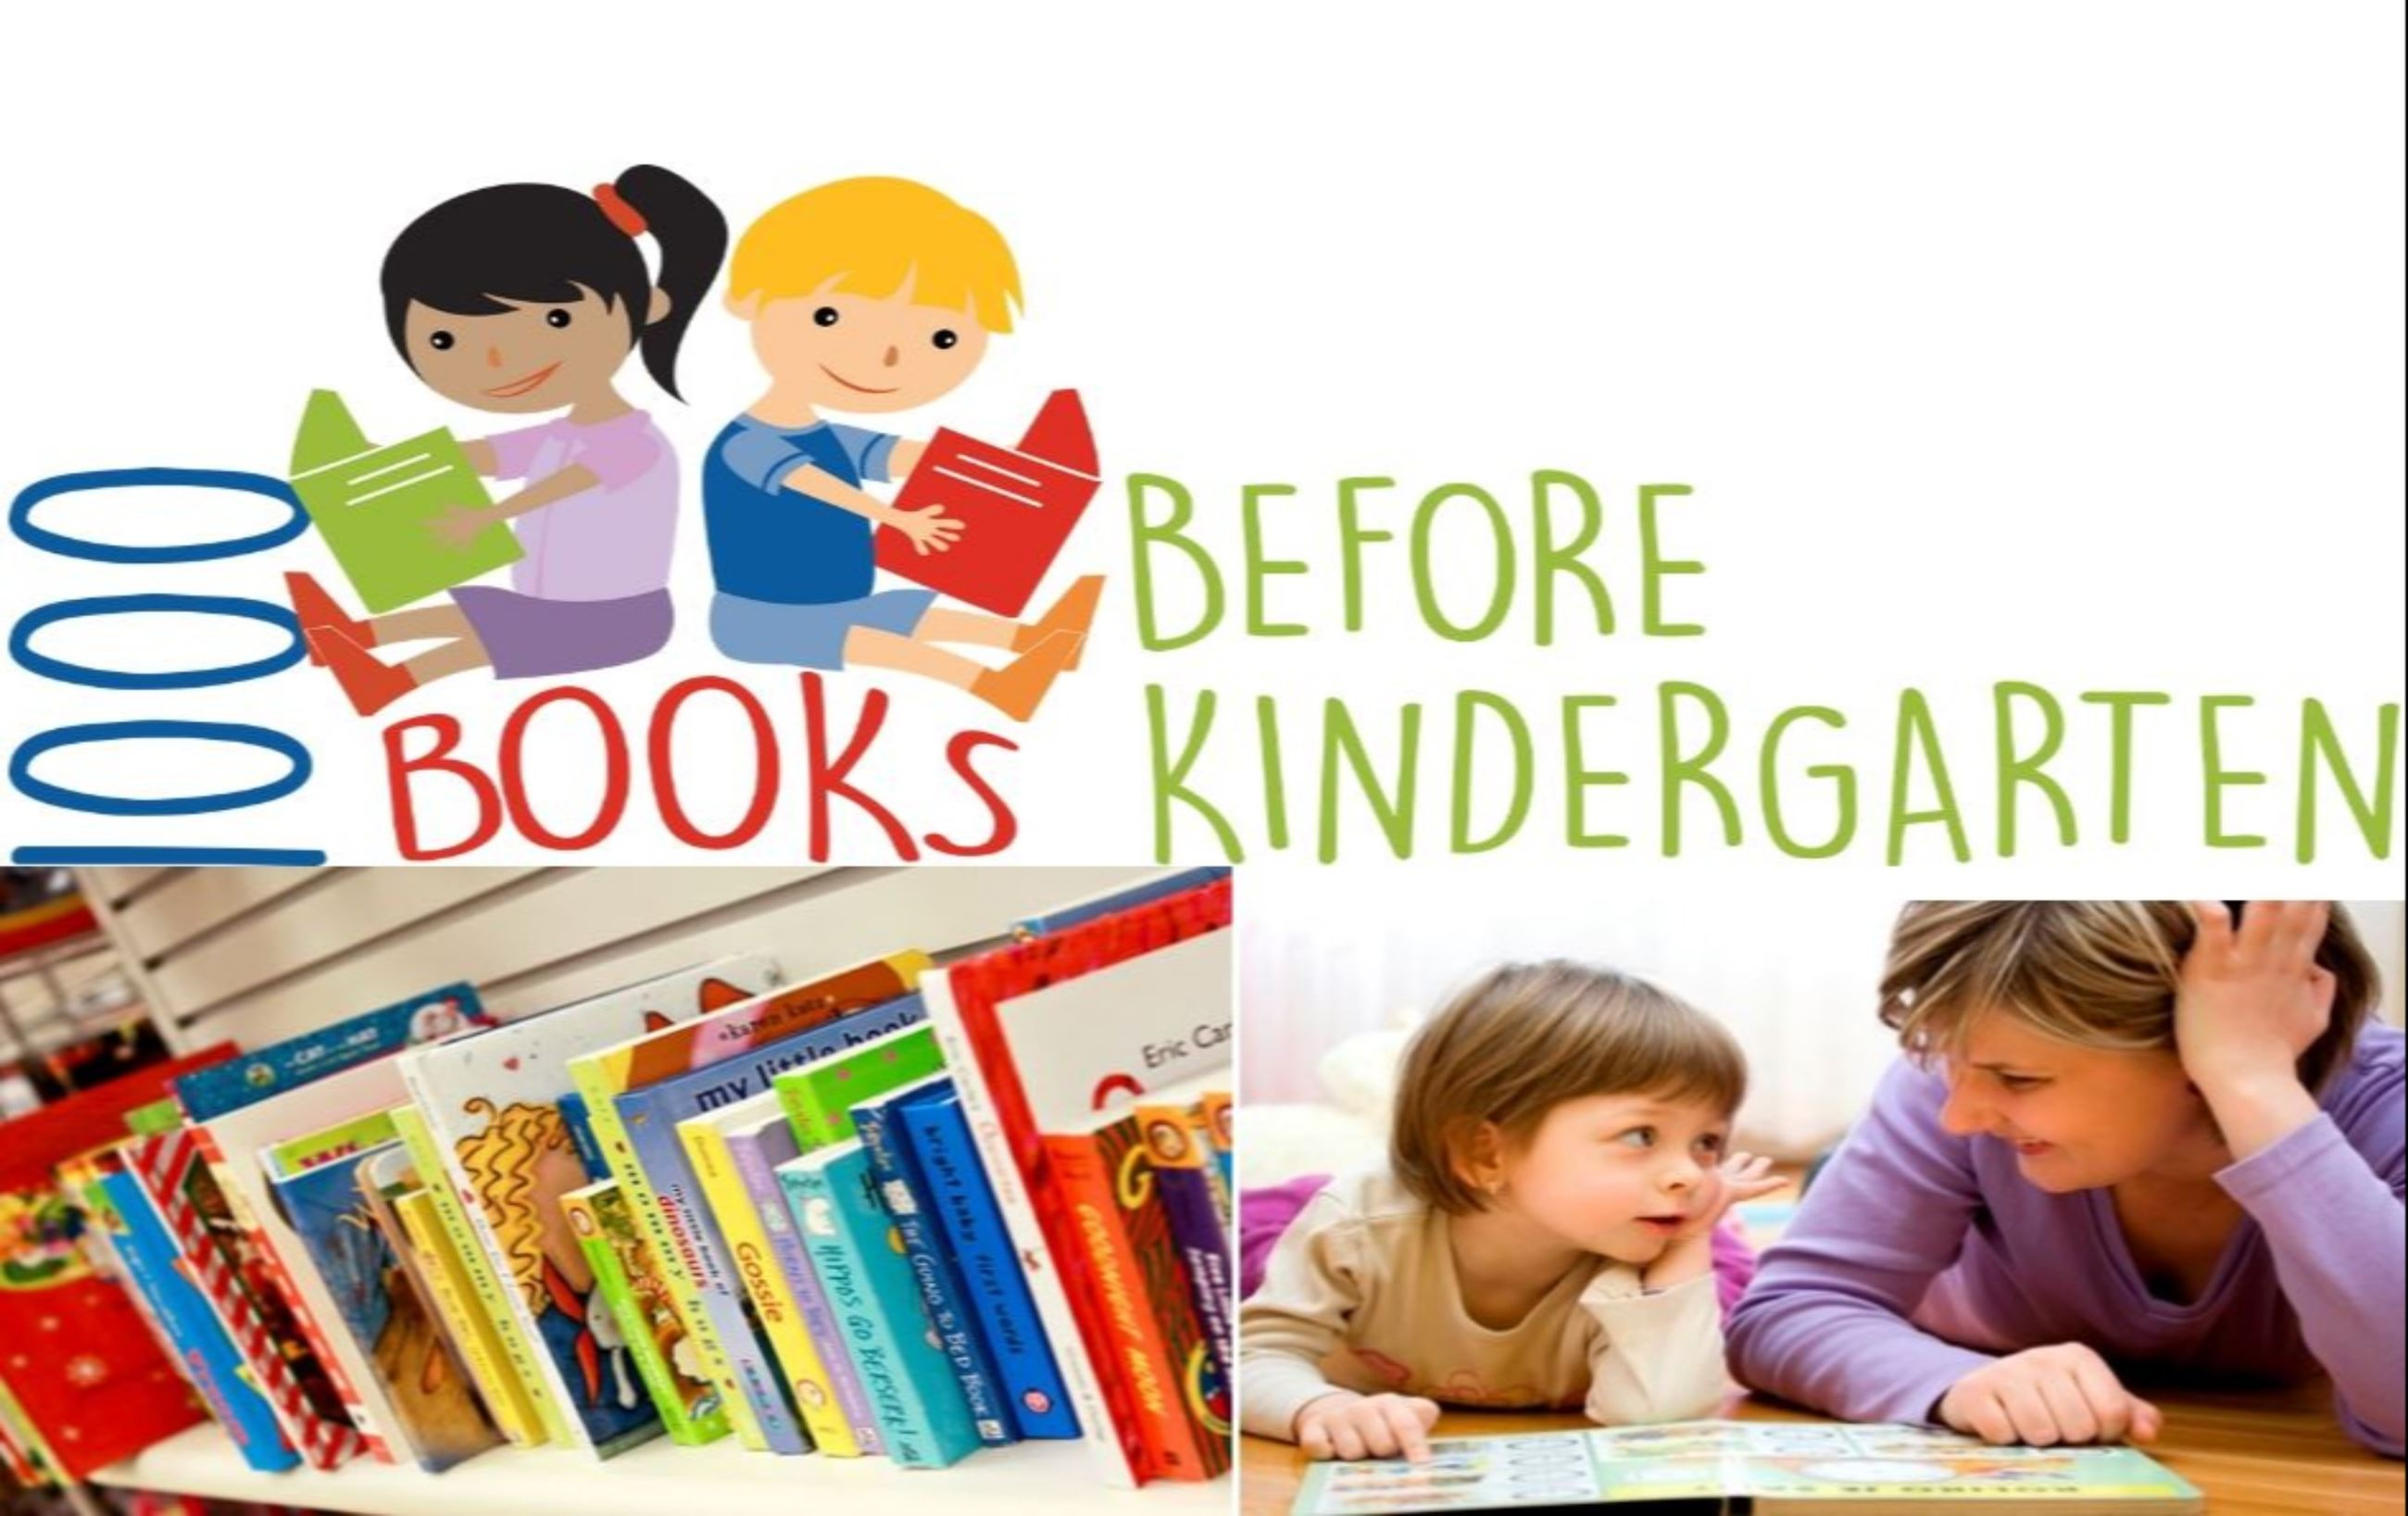 Register for 1000 Books Before Kindergarten